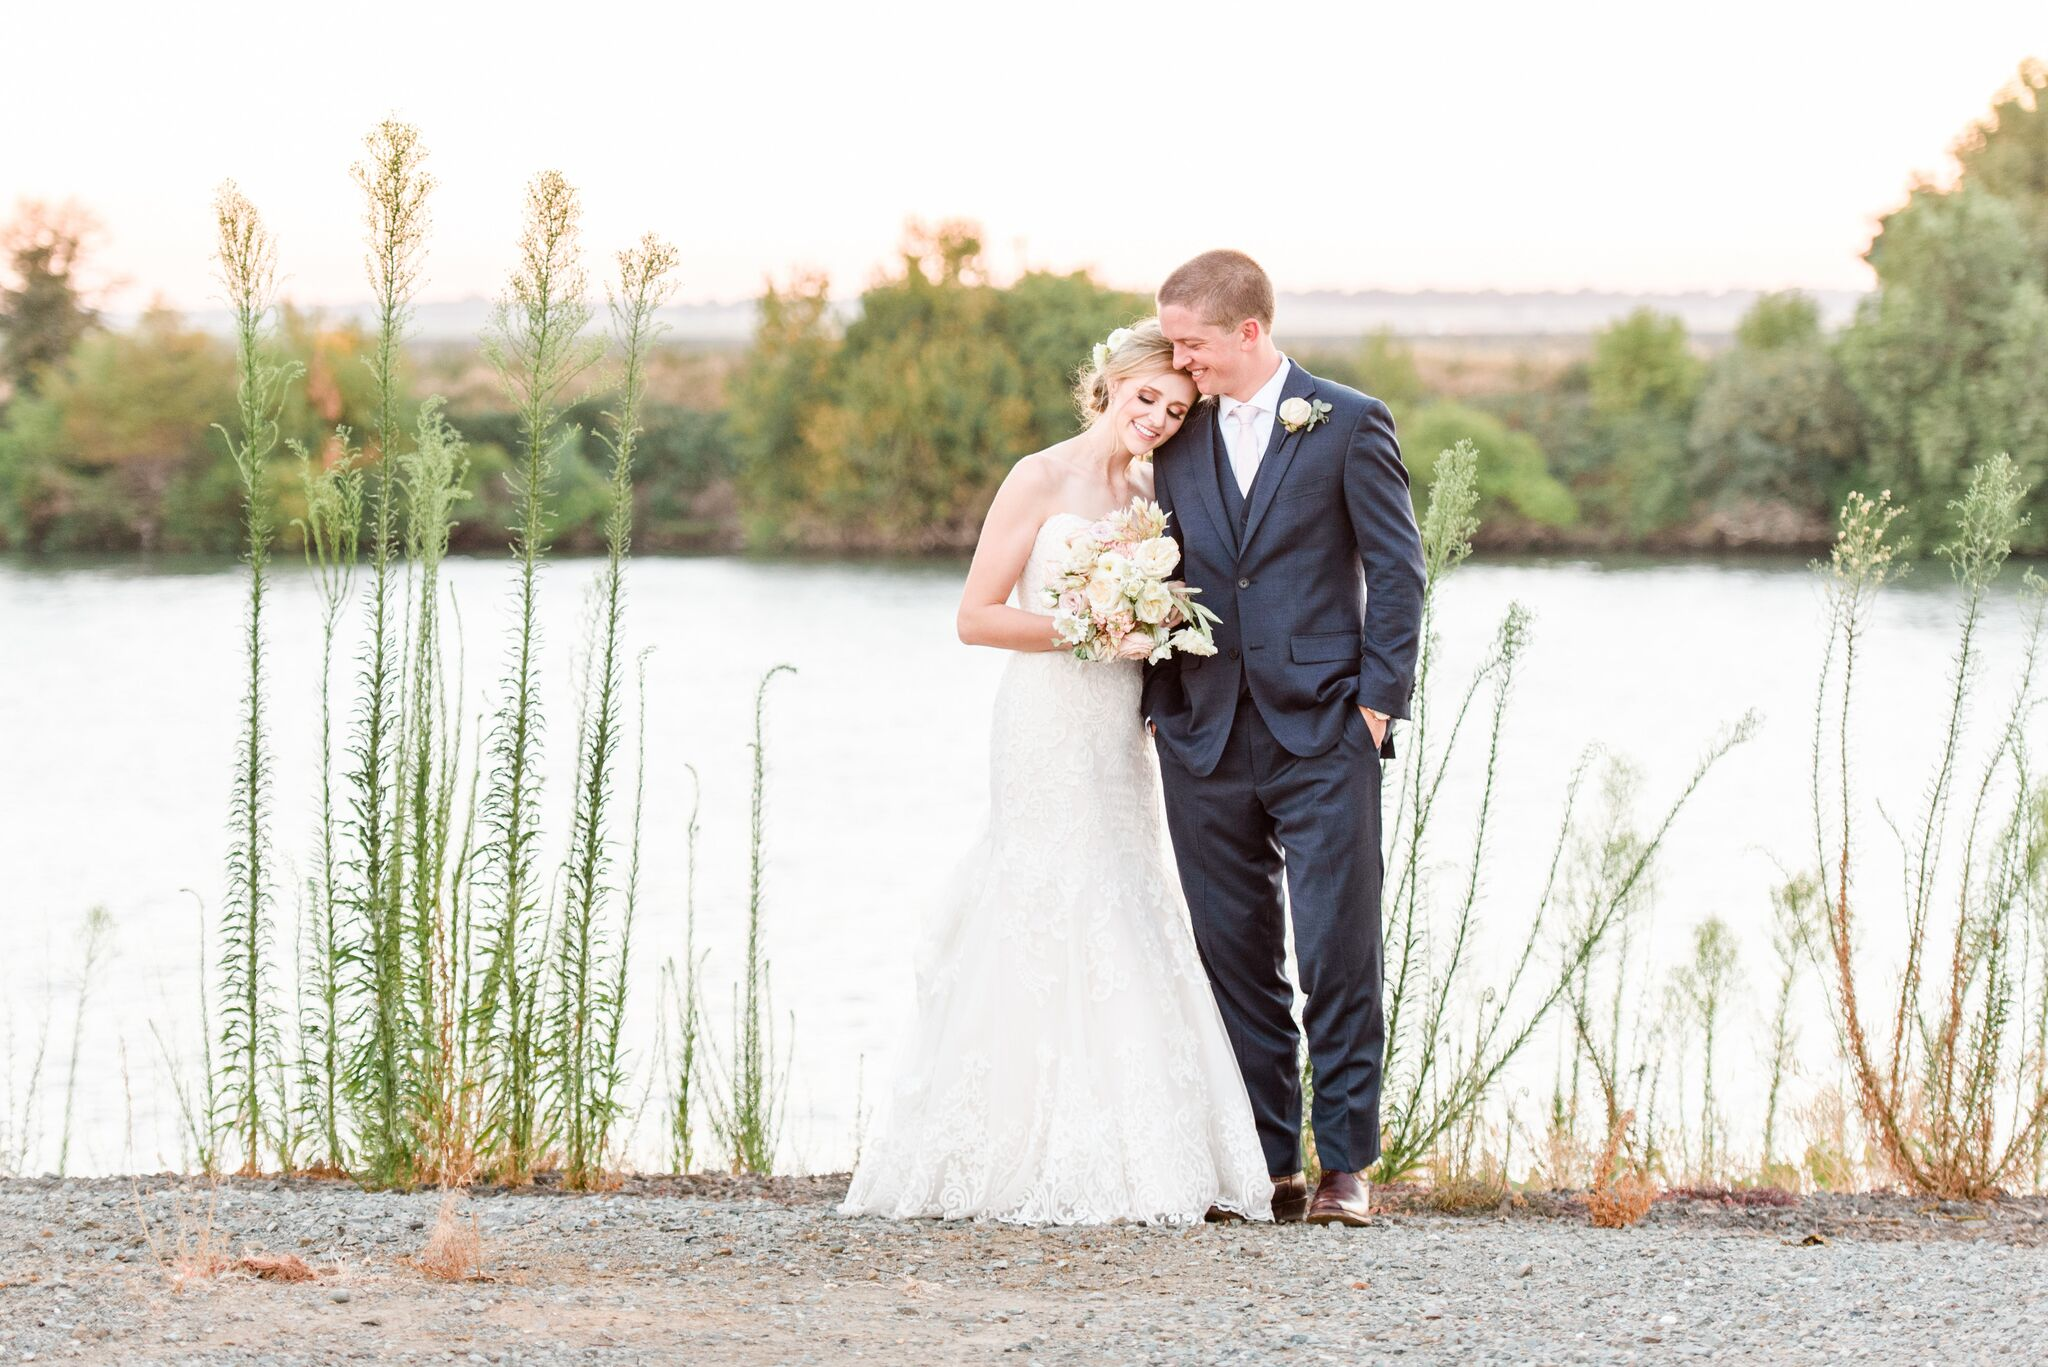 Callie-Trever-Wedding (1442 of 1642)_preview-1.jpg